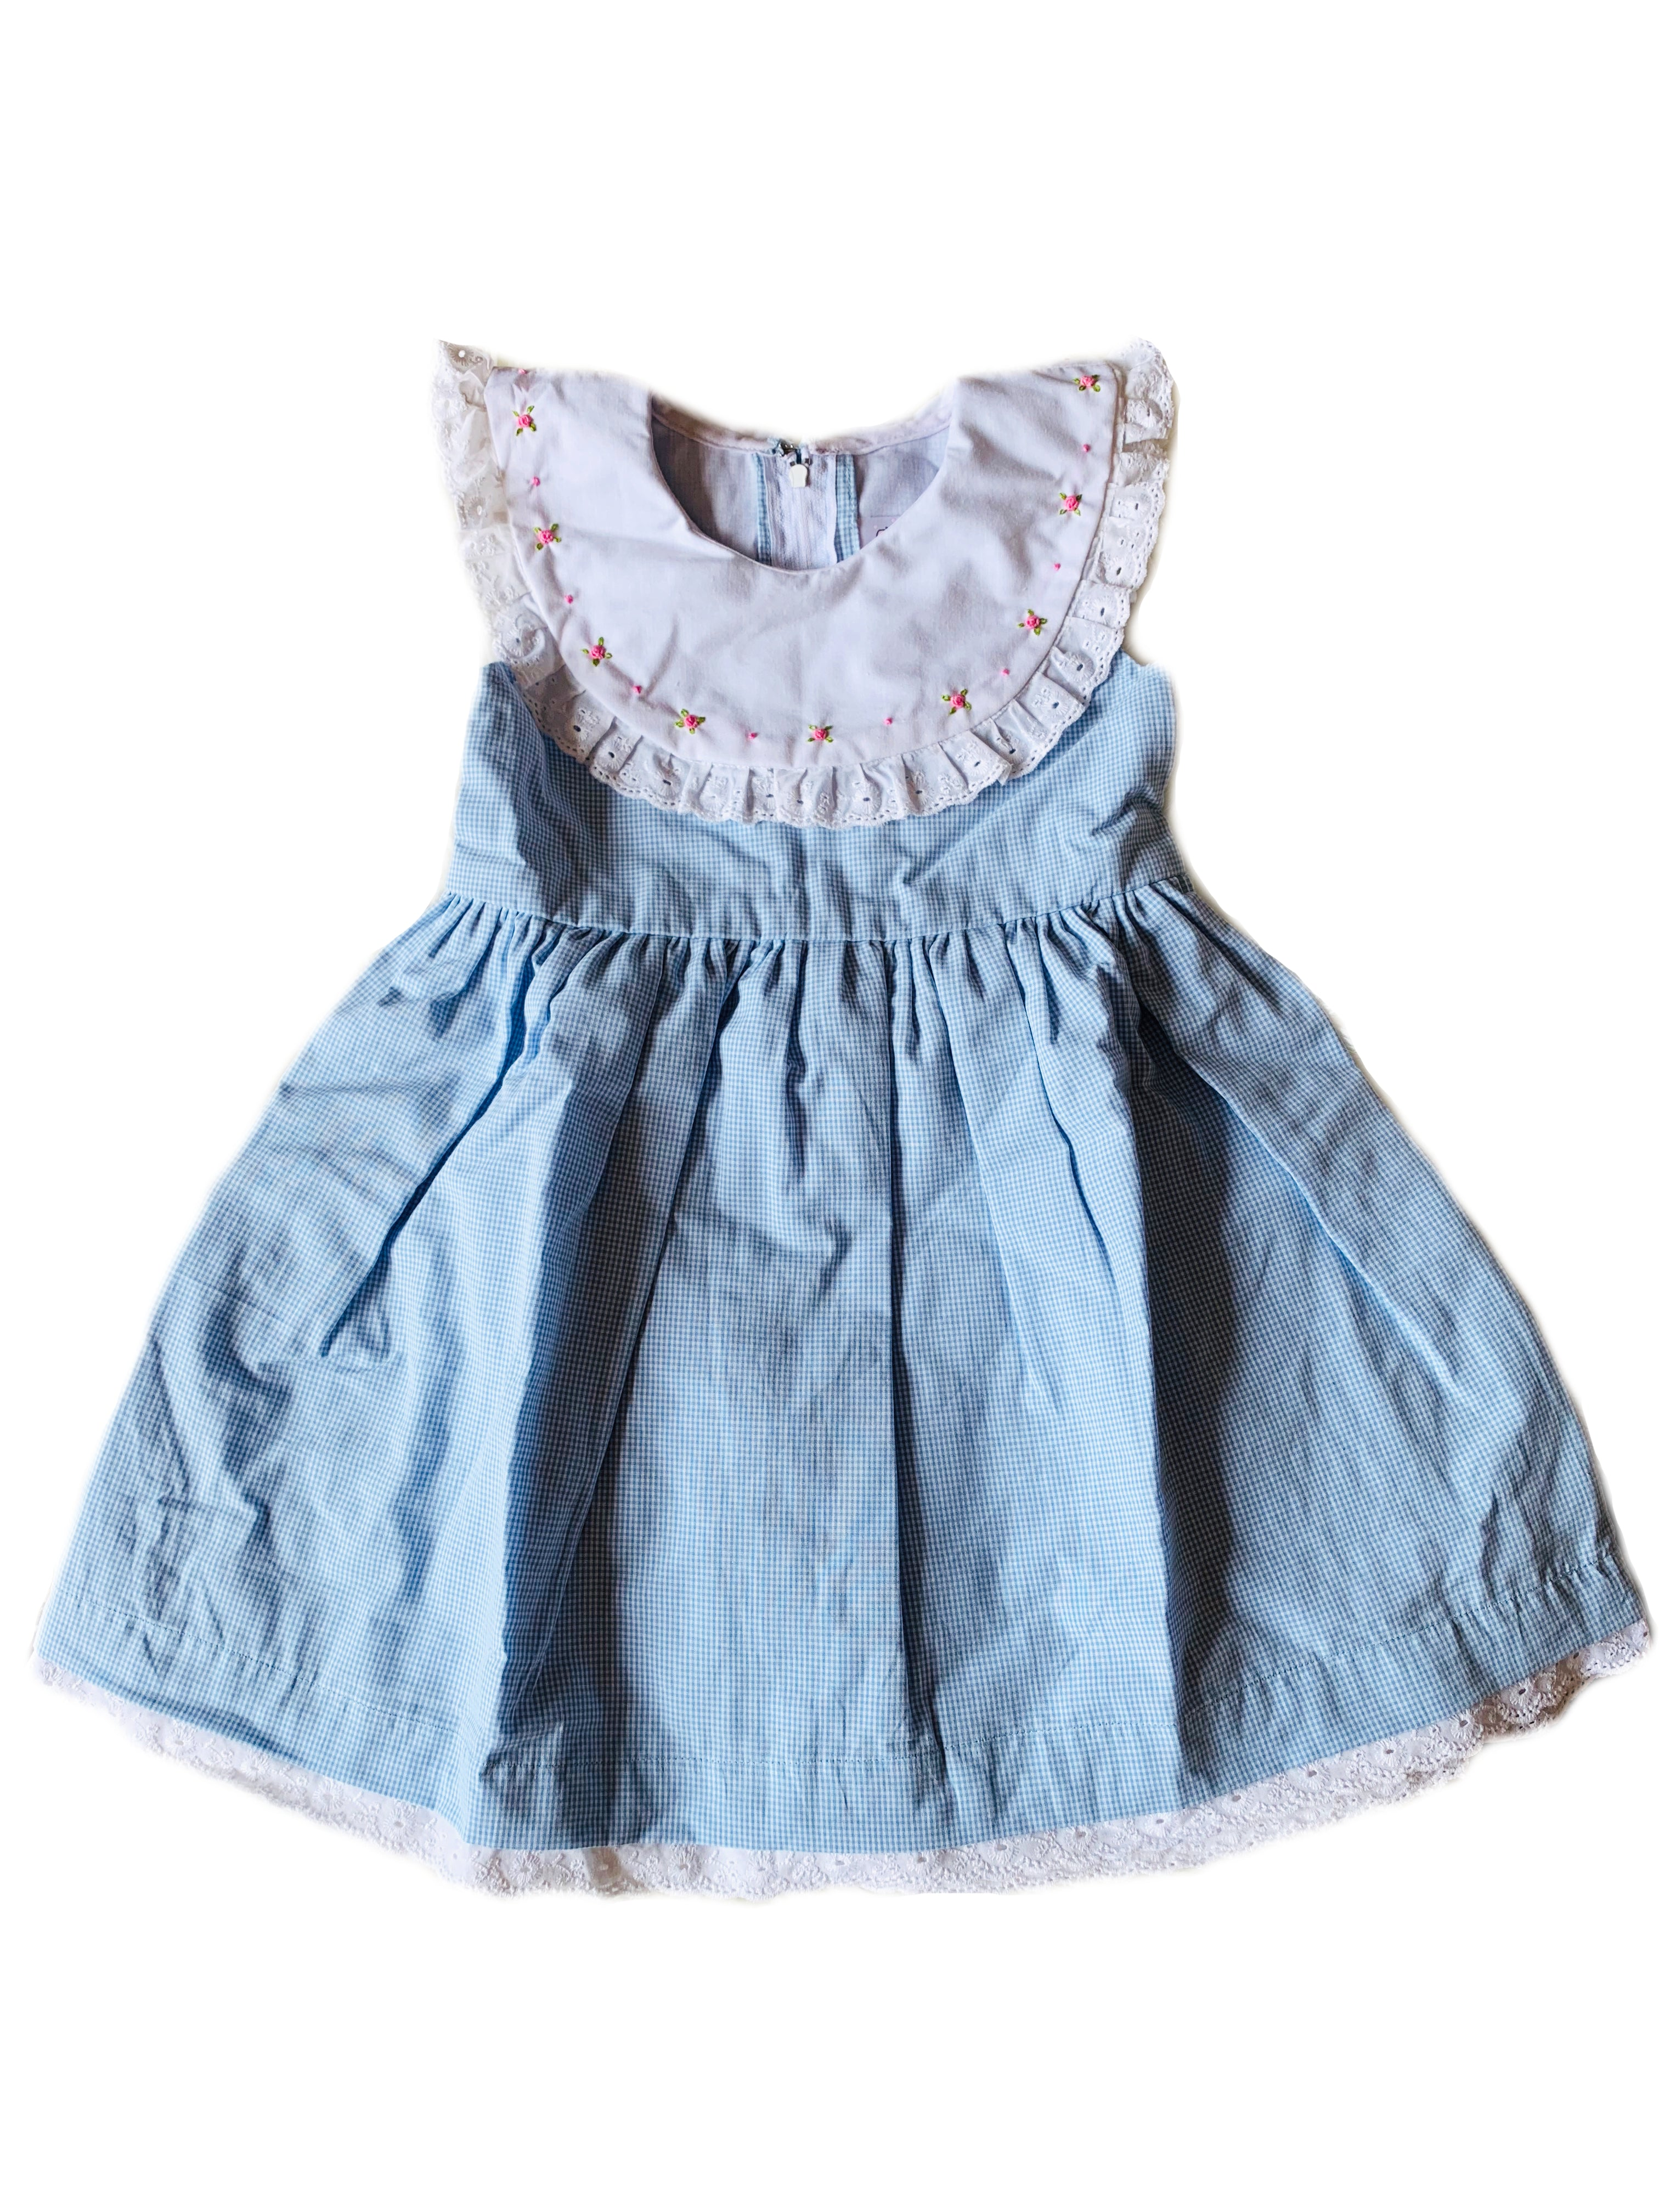 Baby blue gingham sleeveless dress with contrasting round white collar and dainty hand-embroidered flowers, lace to trim the hem and sash to tie at waist for girls